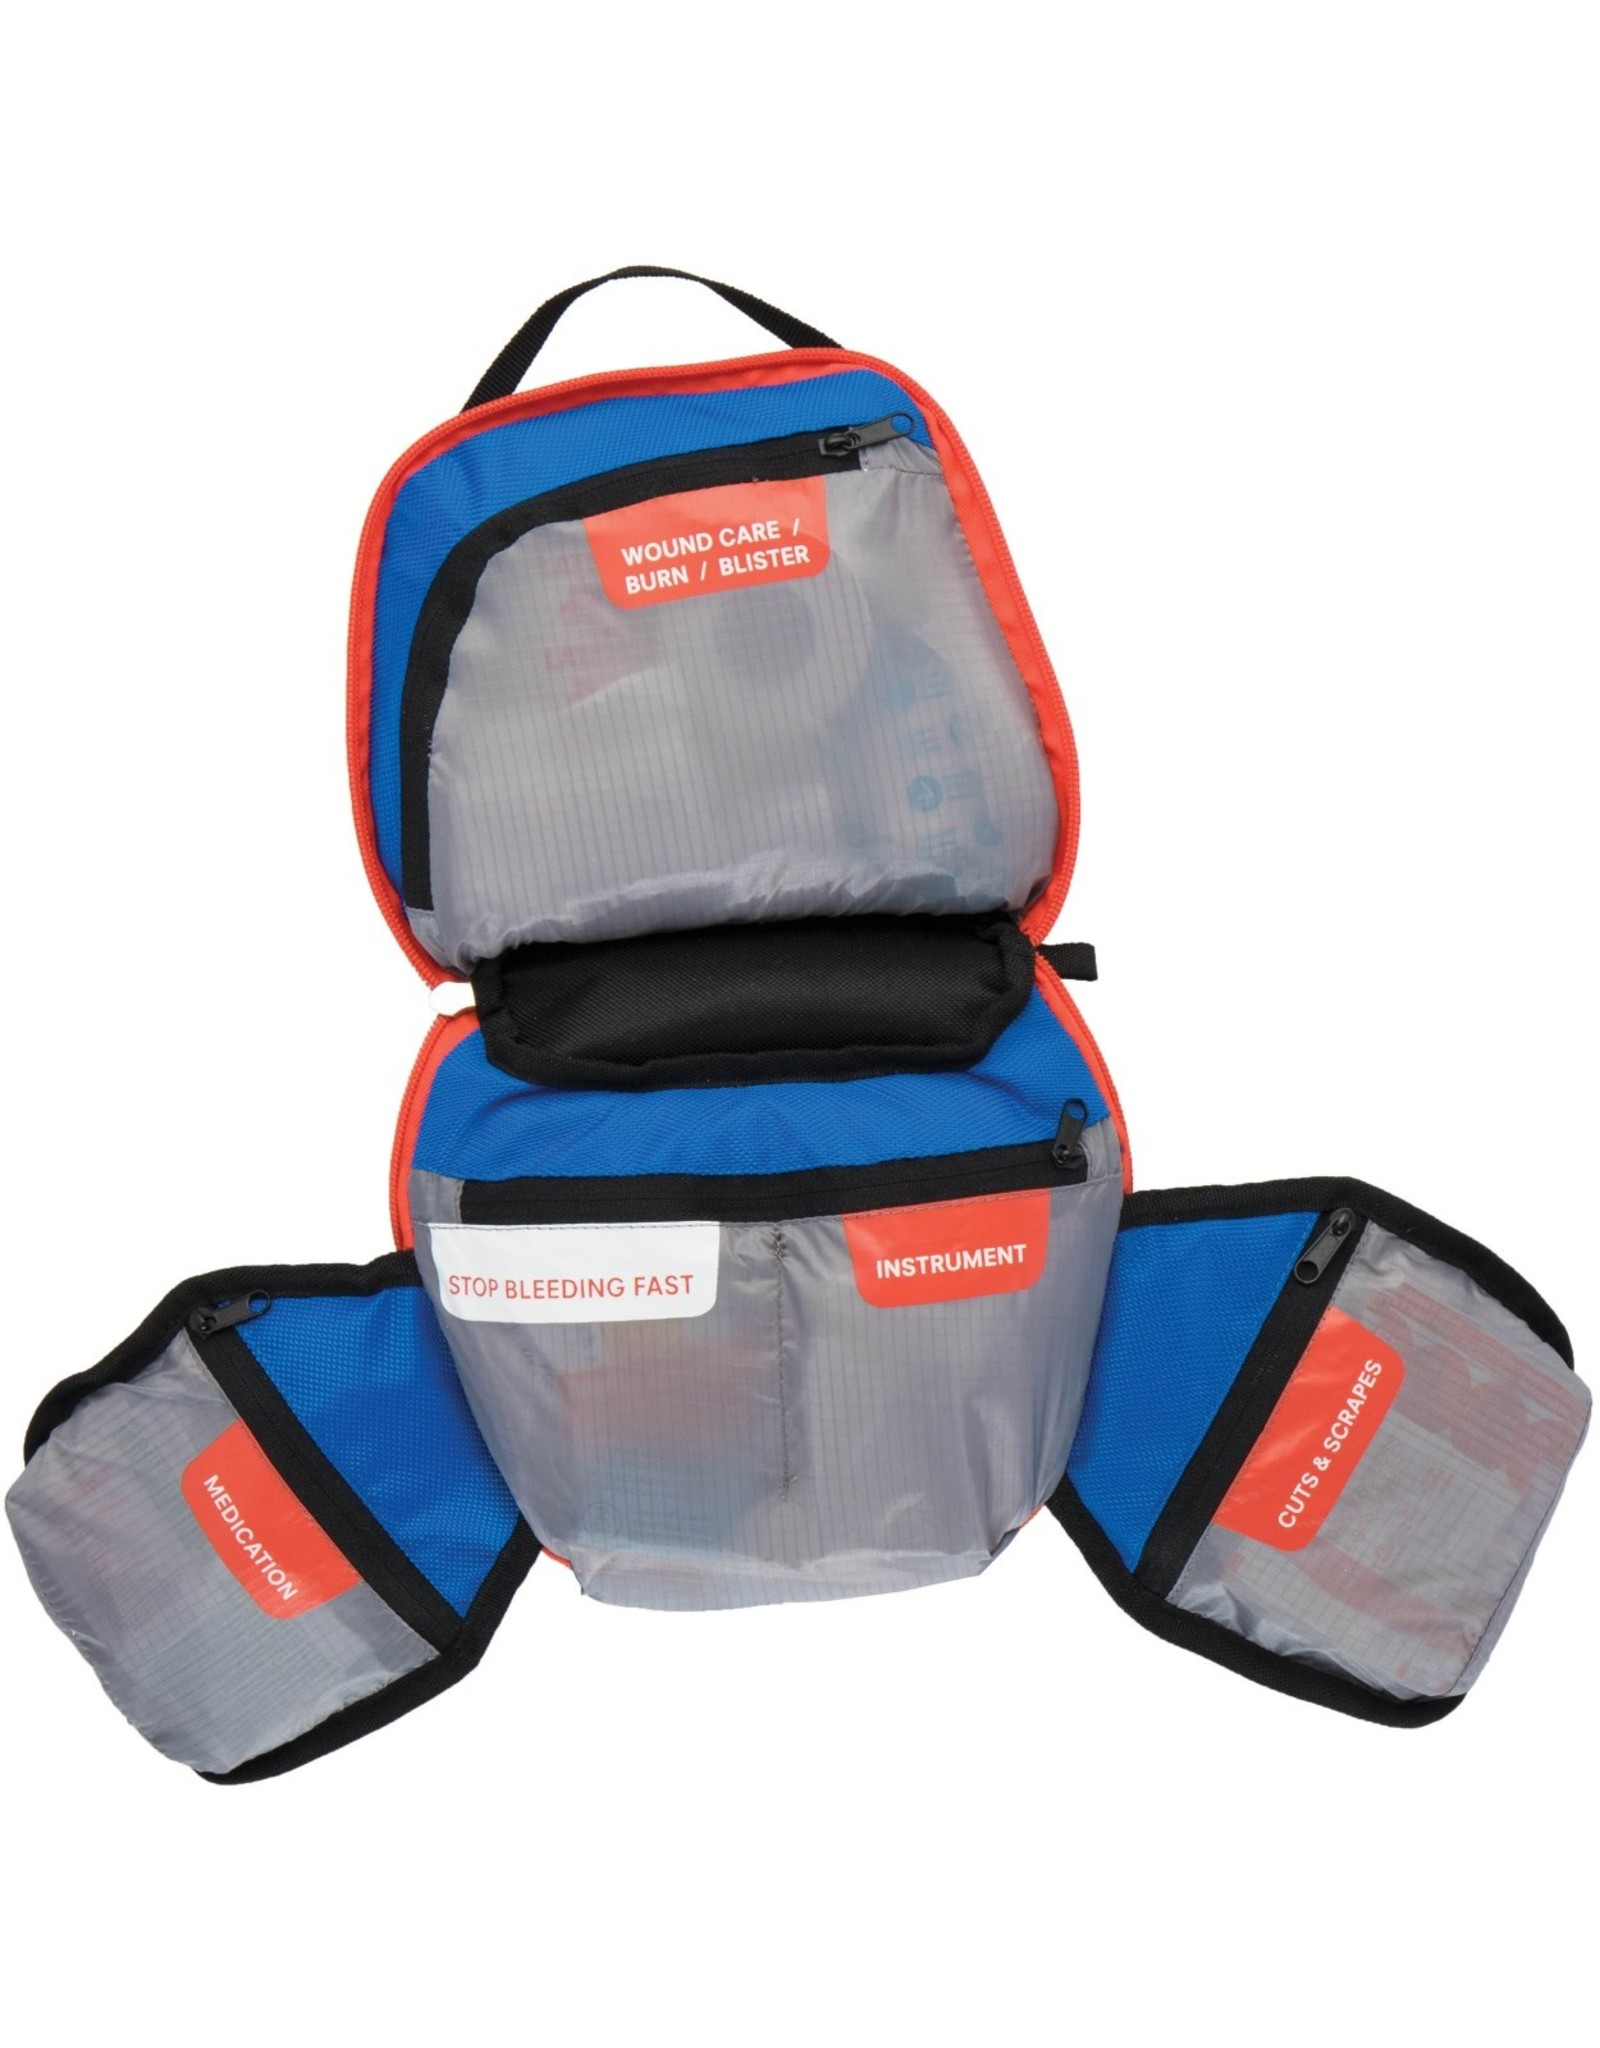 TENDER CORPORATION MOUNTAIN SERIES FIRST AID KIT BACKPACKER